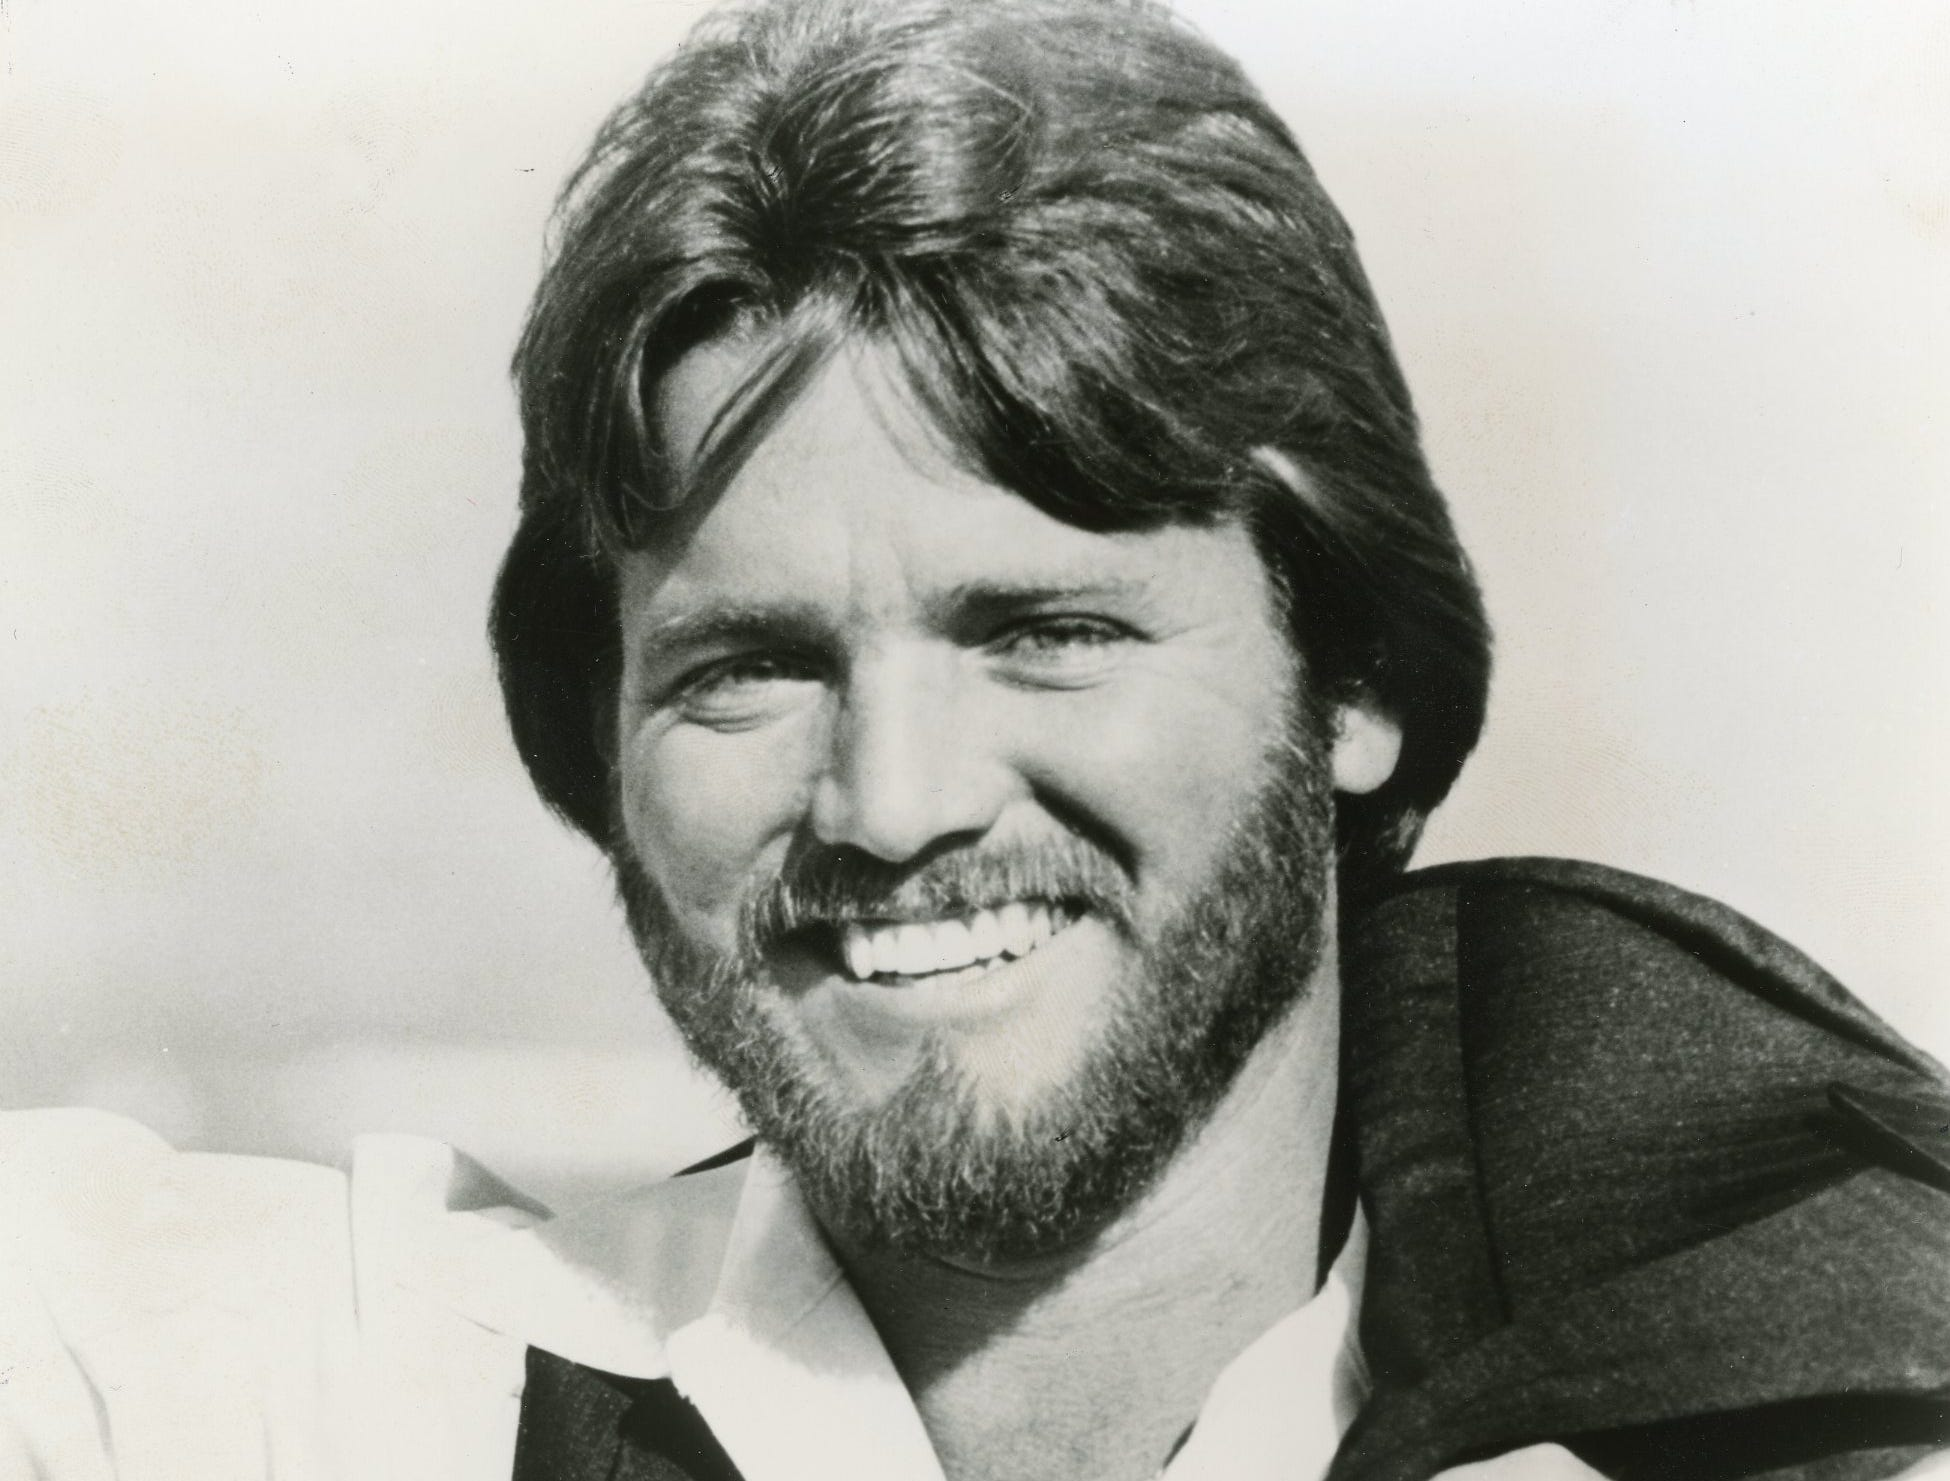 Singer Con Hunley in an August, 1979 publicity photo.